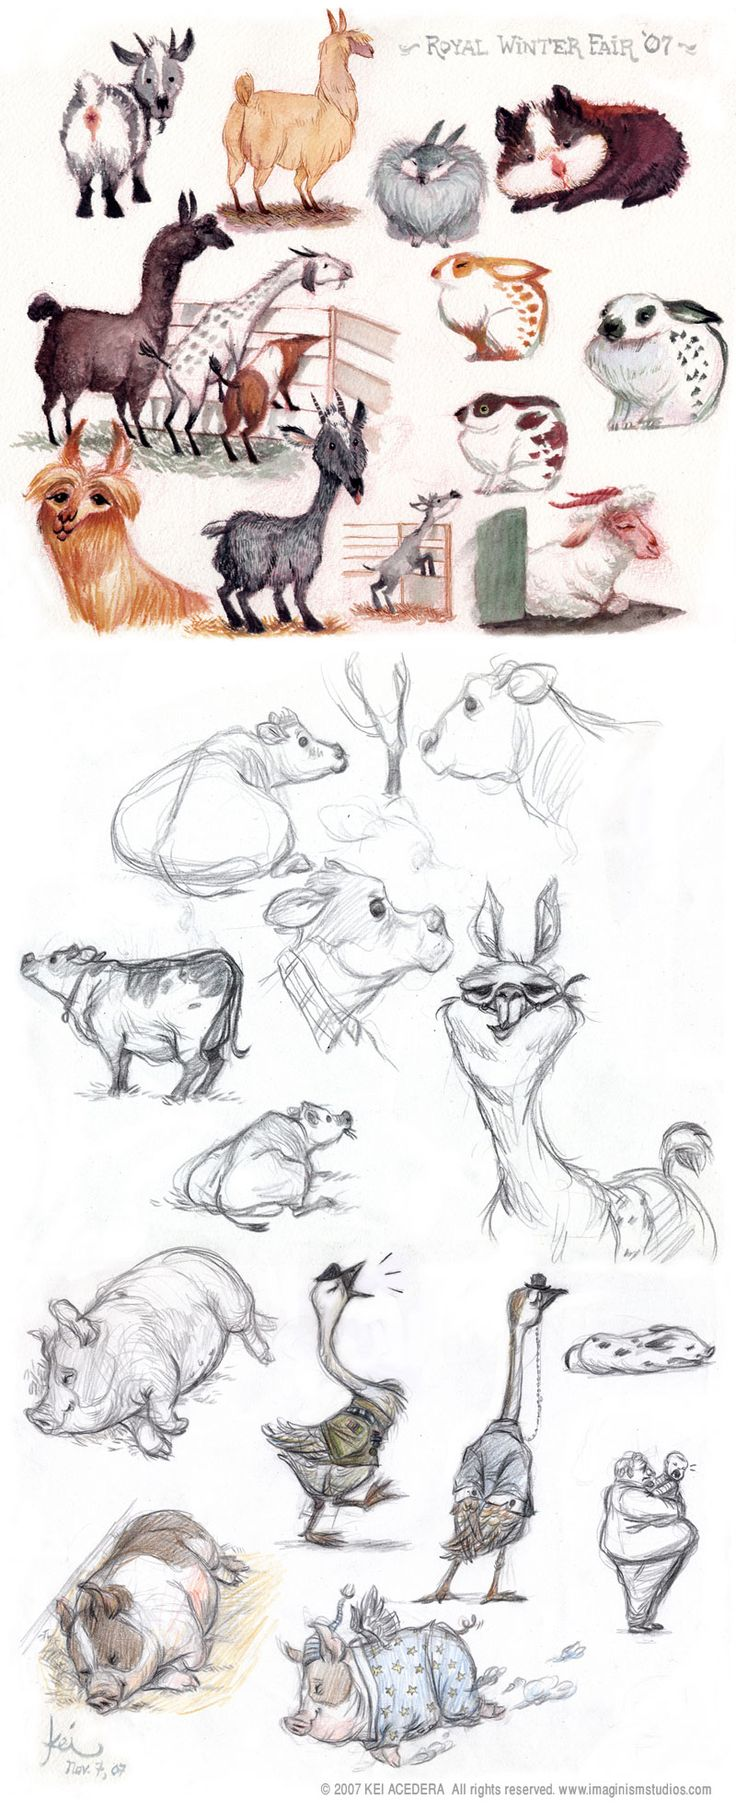 Farm Animals (gouache on watecolor paper, 8 1/2 x 11 inches; pencils on paper)  by Kei Acedera - Imaginism Studios Blog: November 2007